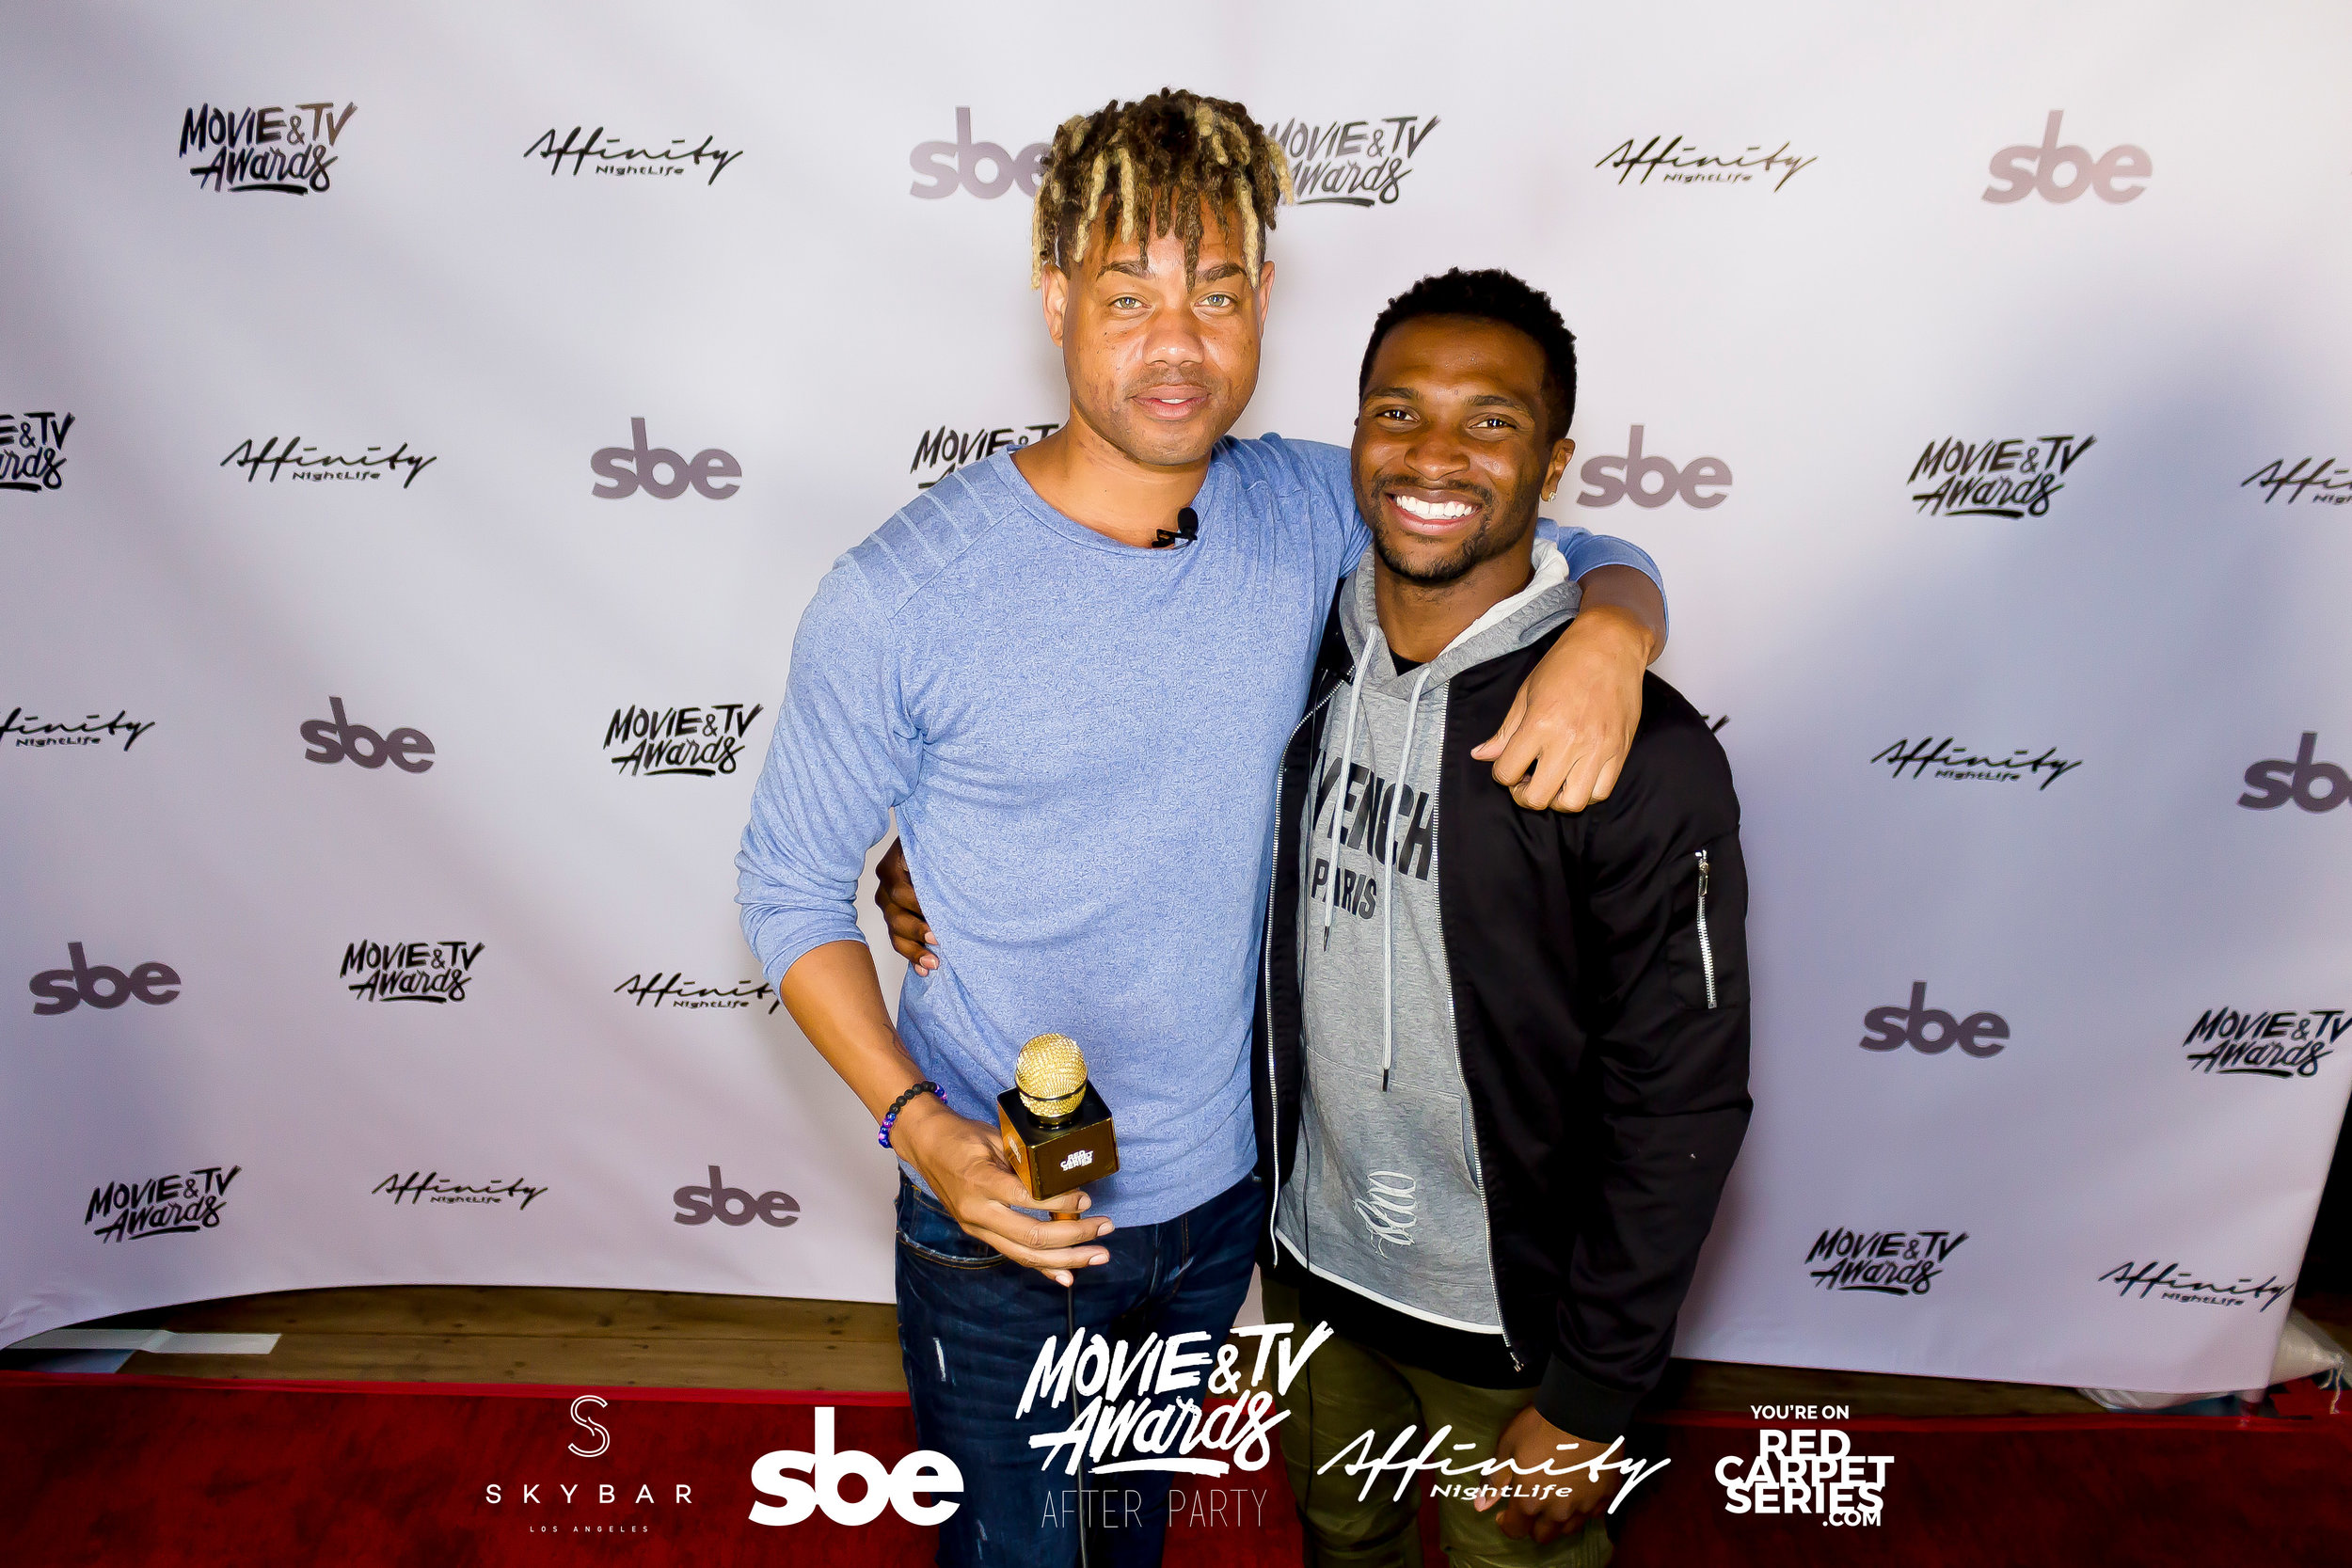 Affinity Nightlife MTV Movie & TV Awards After Party - Skybar at Mondrian - 06-15-19 - Vol. 1_163.jpg